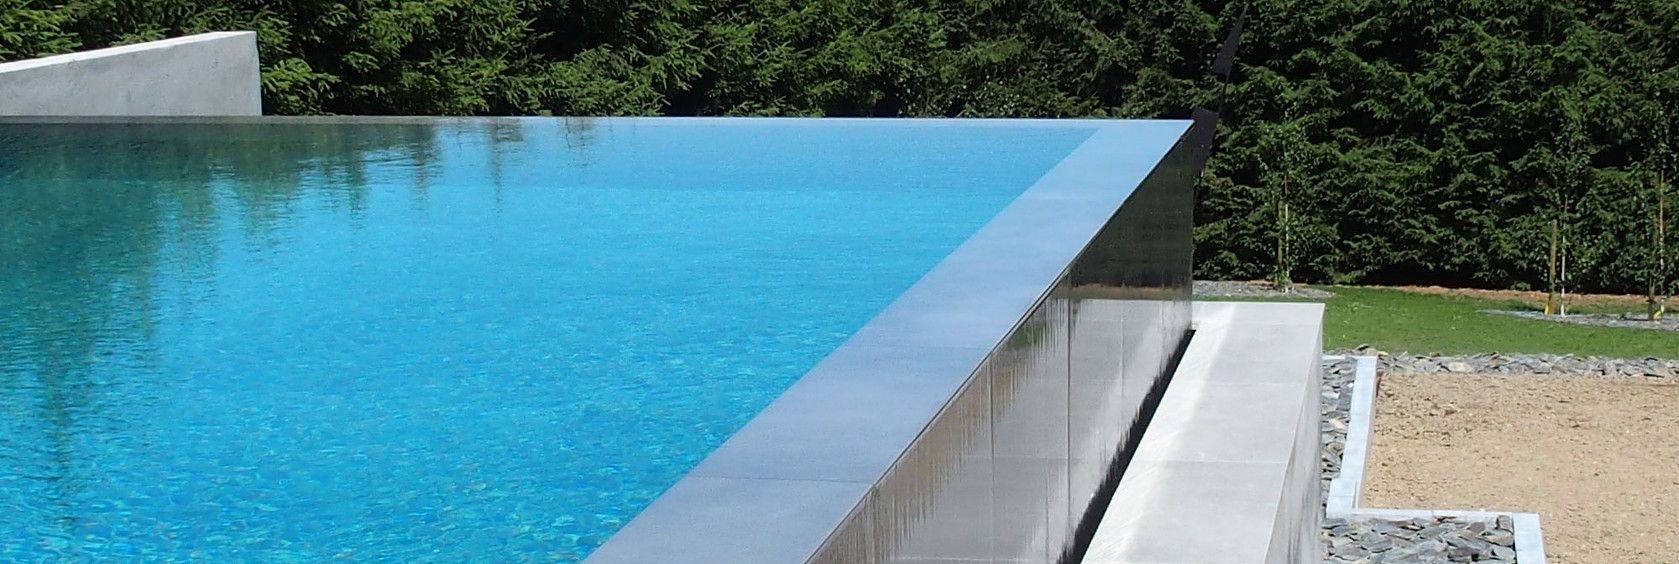 Construction piscine b ton piscine belgique entrepreneur for Construction piscine debordement